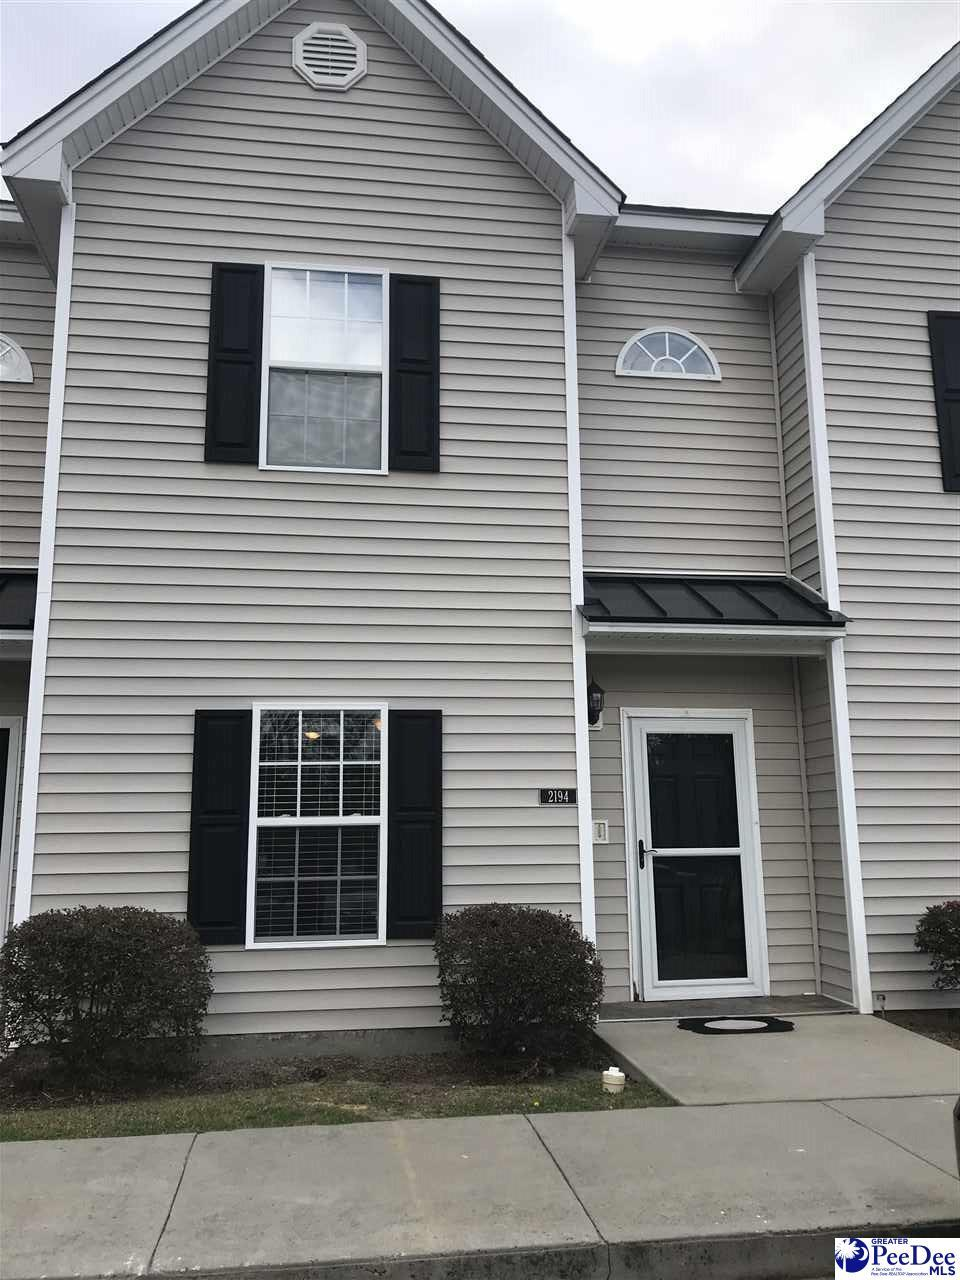 3 bed / 3 baths Condo/Townhouse in Florence for $97,500